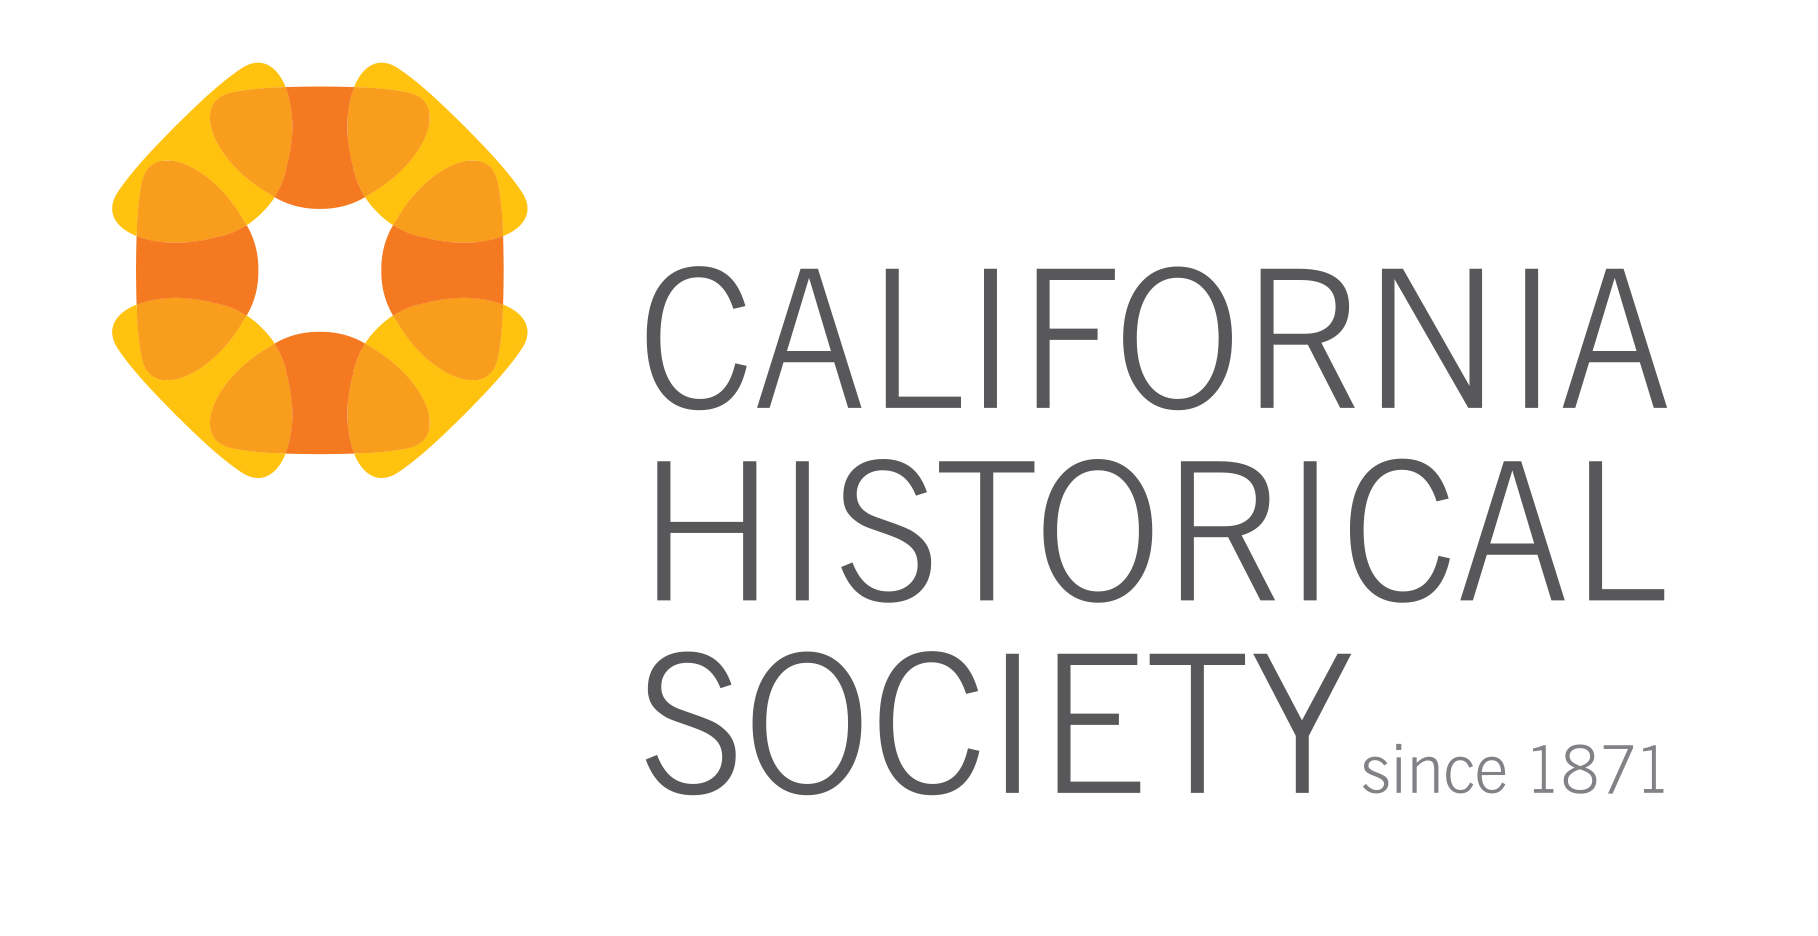 About the California Historical Society